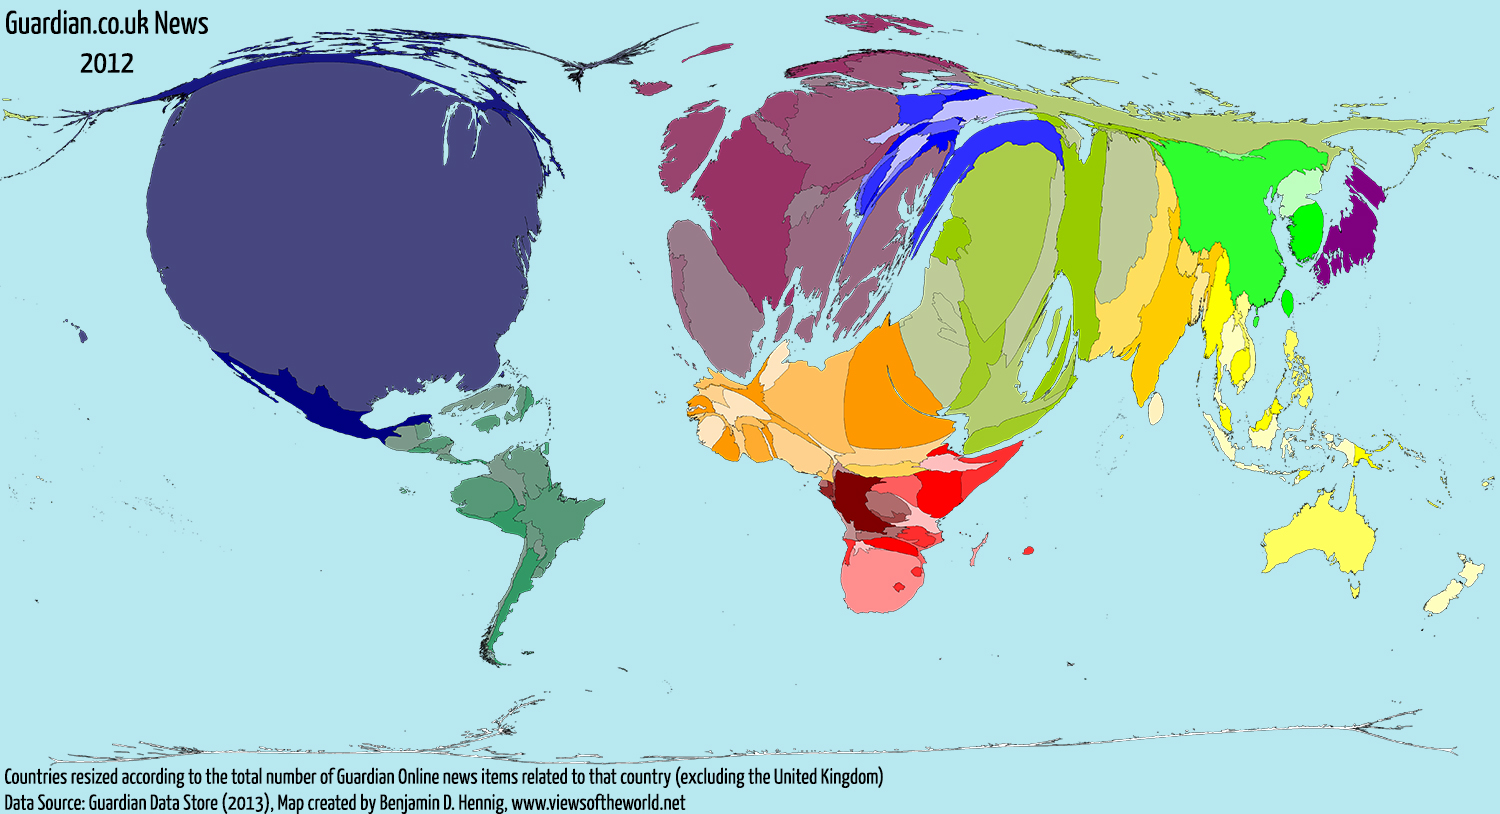 Everythings changing a world of news views of the world map cartogram of global guardian online news coverage in 2012 gumiabroncs